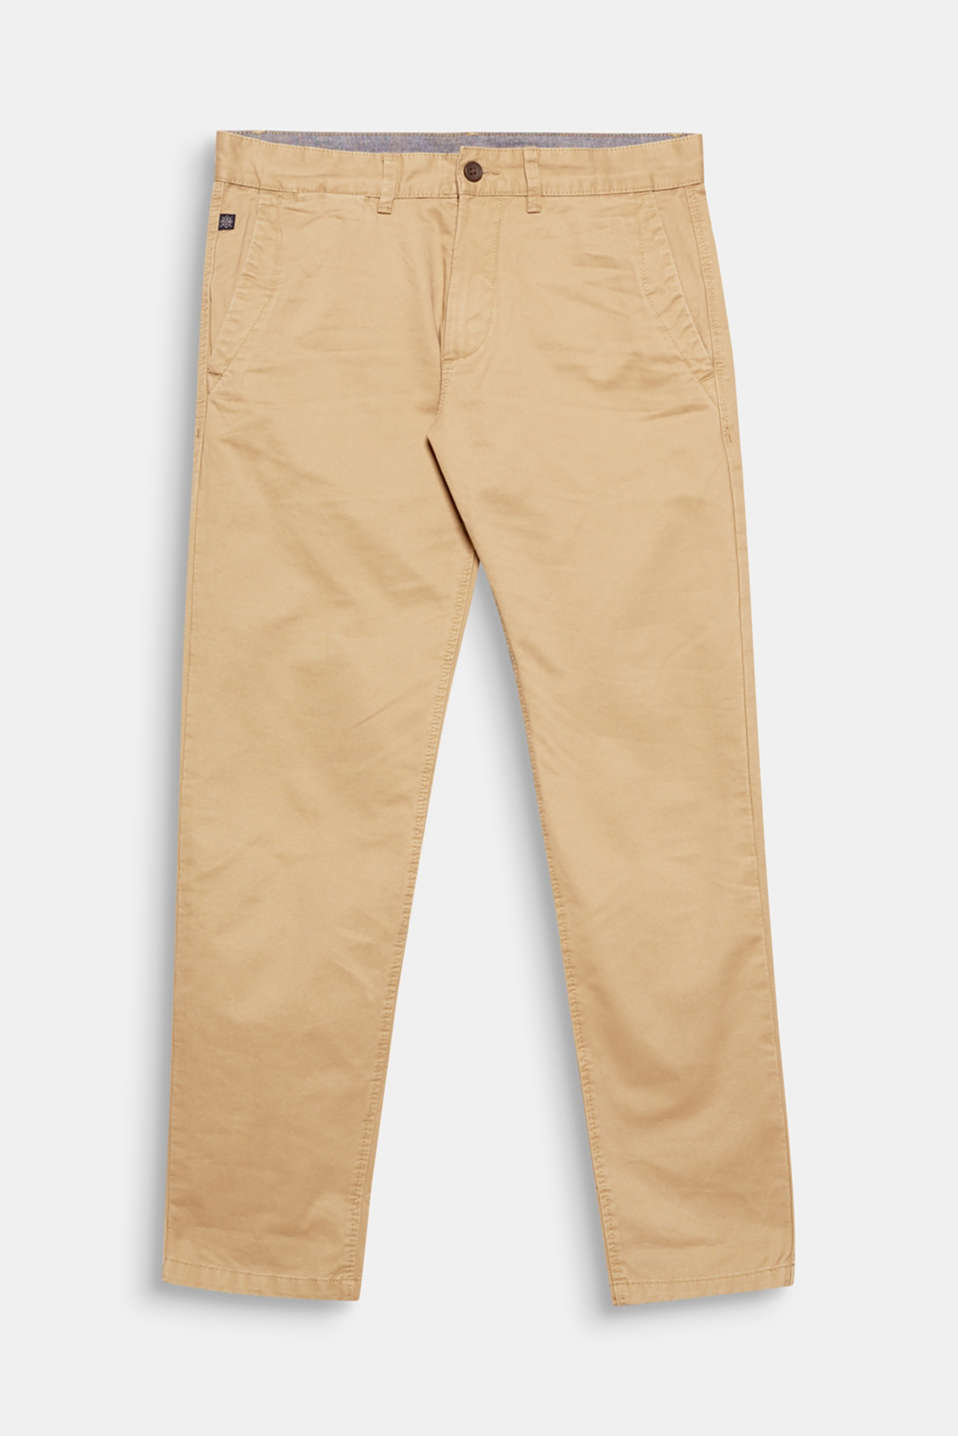 Your fashion basic that your wardrobe should not be without: twill chinos in pure cotton.